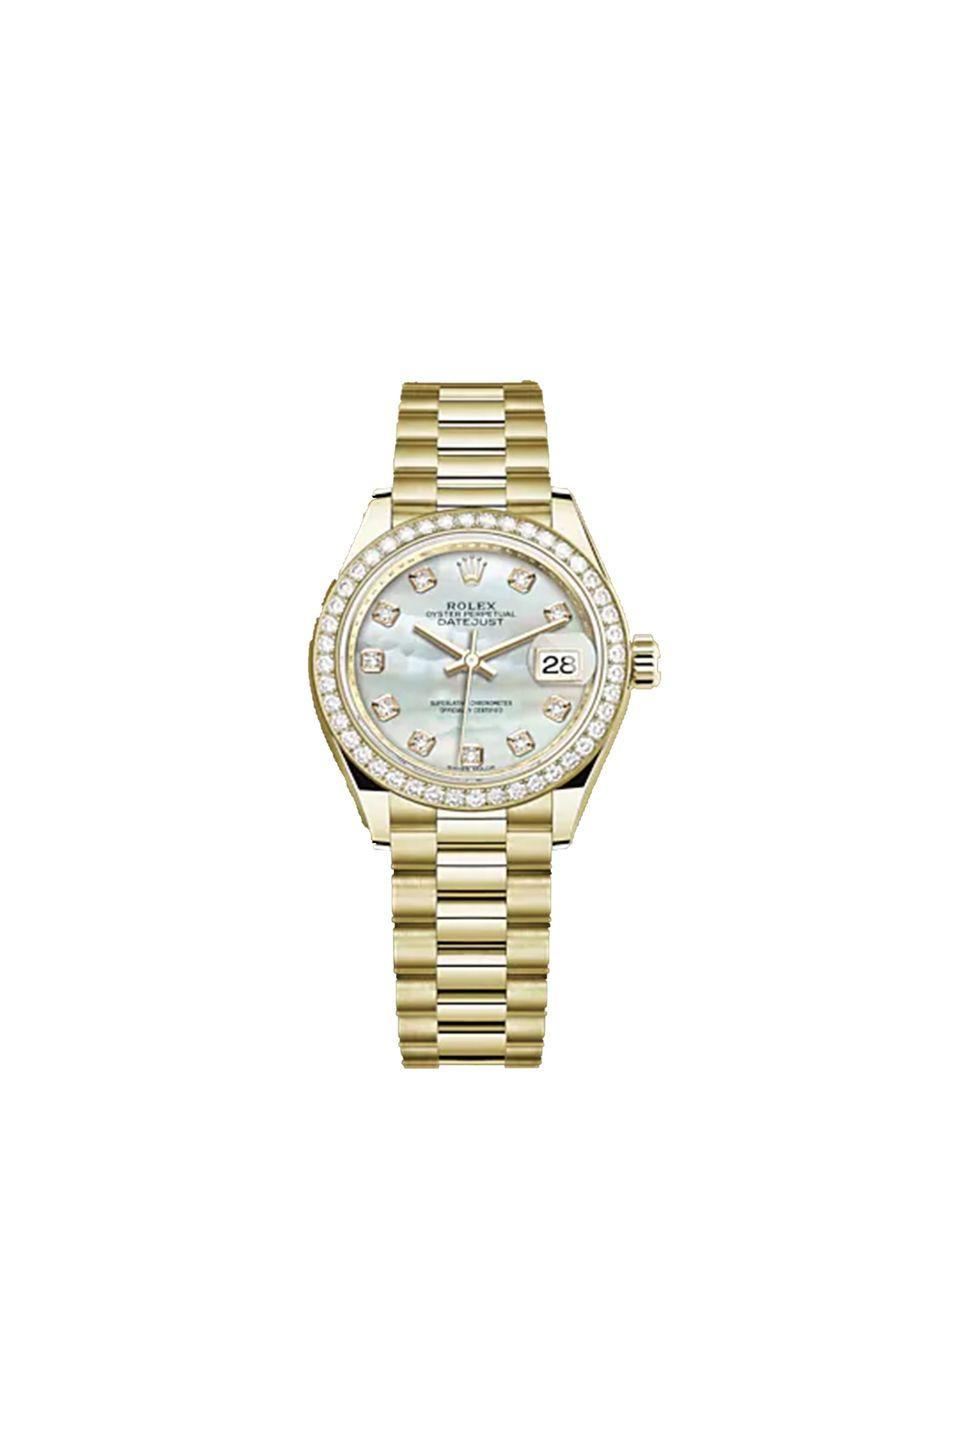 """<p>Gold, diamond and mother-of-pearl watch, £30,060, Rolex<br><br><a class=""""link rapid-noclick-resp"""" href=""""https://www.rolex.com/watches/lady-datejust/m279138rbr-0015.html"""" rel=""""nofollow noopener"""" target=""""_blank"""" data-ylk=""""slk:SHOP NOW"""">SHOP NOW</a><br></p>"""